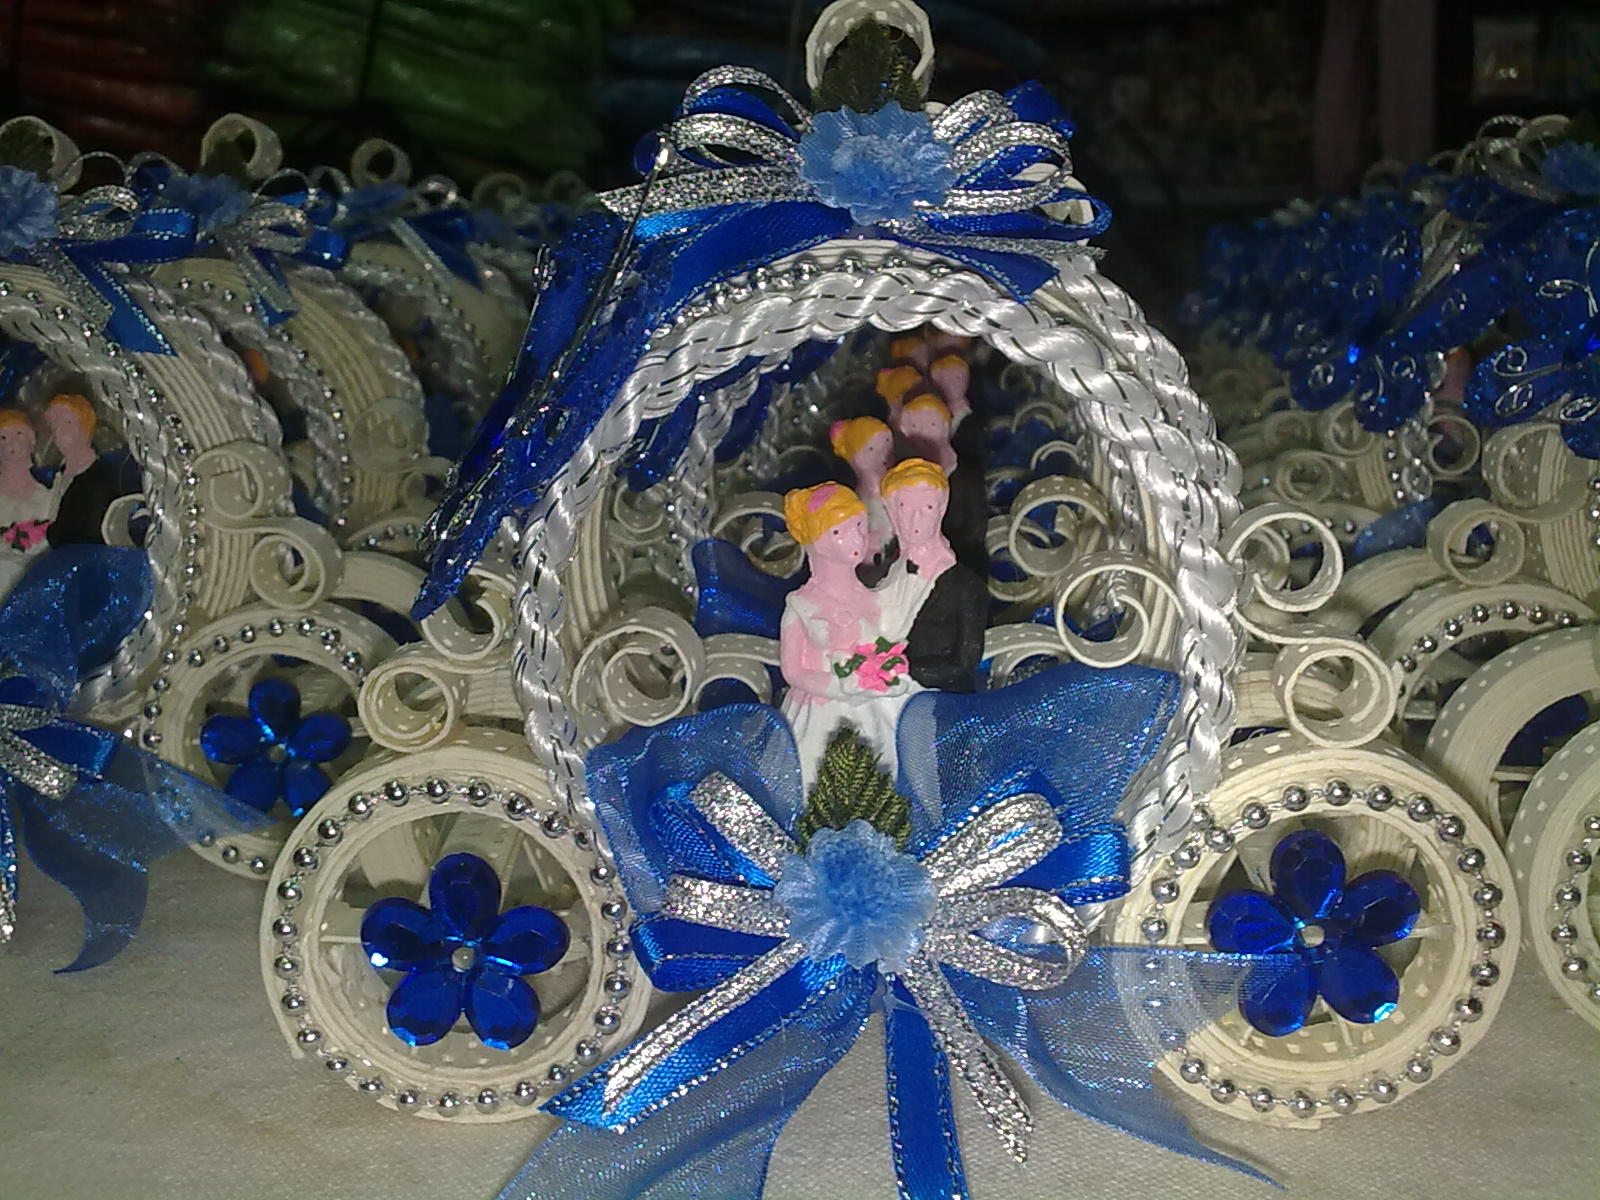 Wedding Giveaways Ideas In Cebu : Wedding souvenirs for Reiniel and Judy Grace Deec 18, 2010